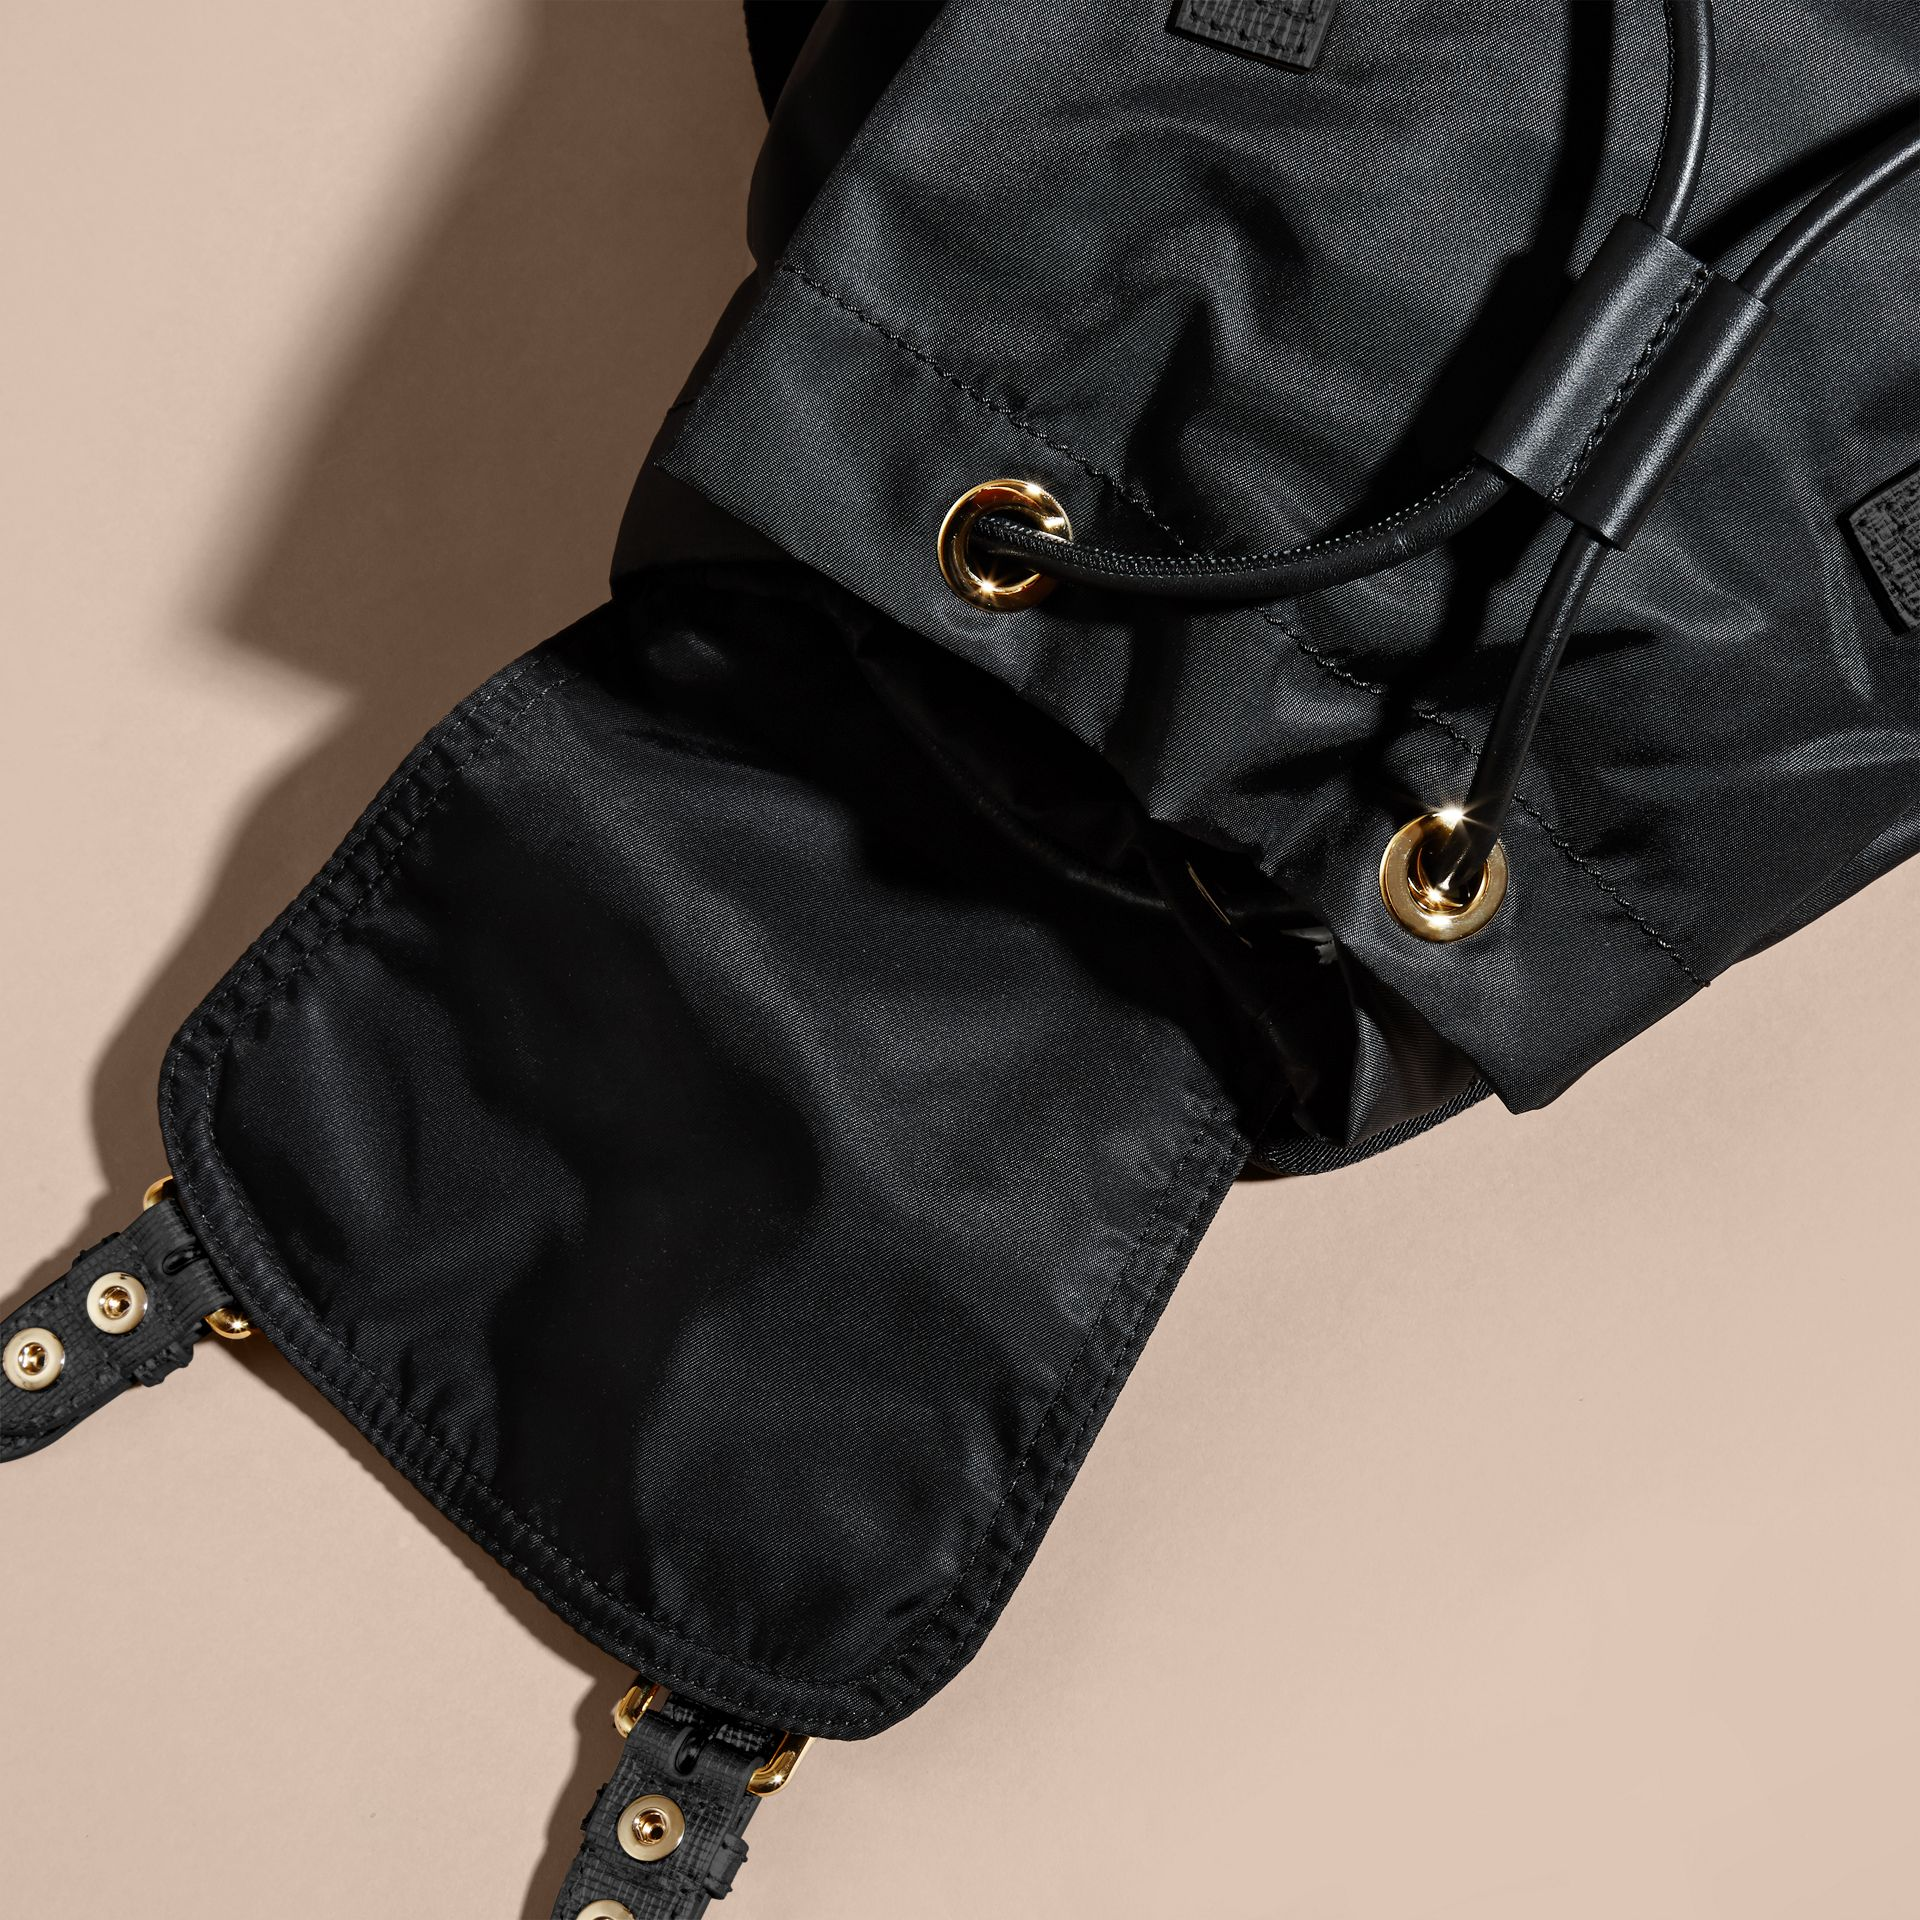 Black/gold The Medium Rucksack in Two-tone Nylon and Leather Black/gold - gallery image 5